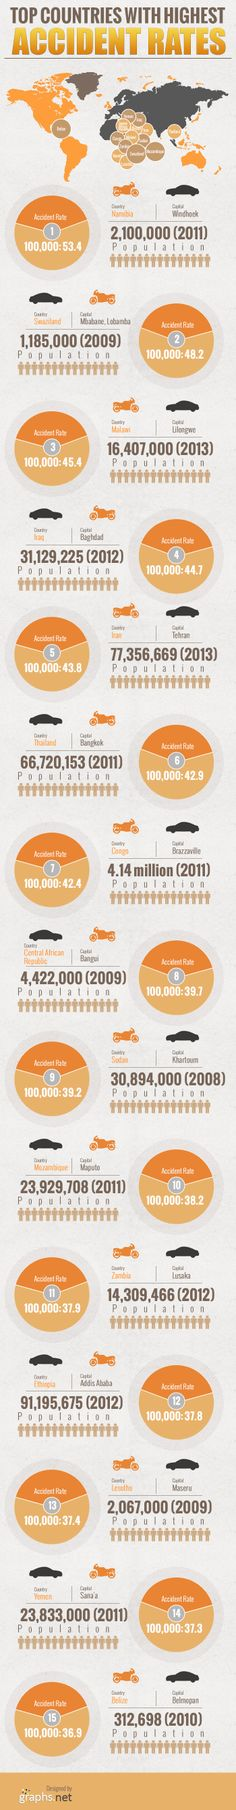 Top Countries With Highest Accidents Rates [INFOGRAPHIC] #accidents#rates